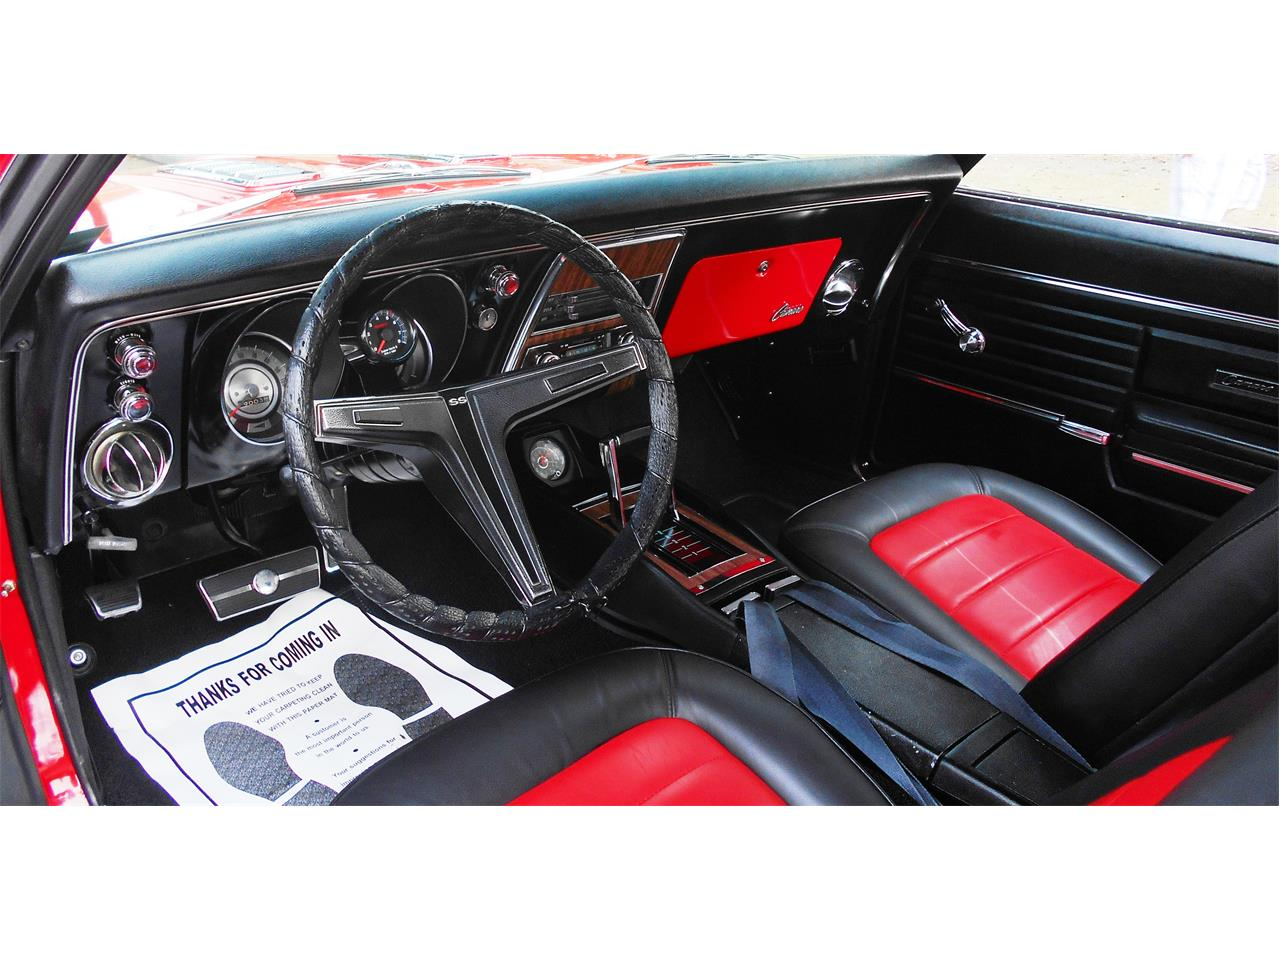 Large Picture of 1968 Camaro located in Tacoma Washington - $33,950.00 Offered by Austin's Pro Max - OBAX